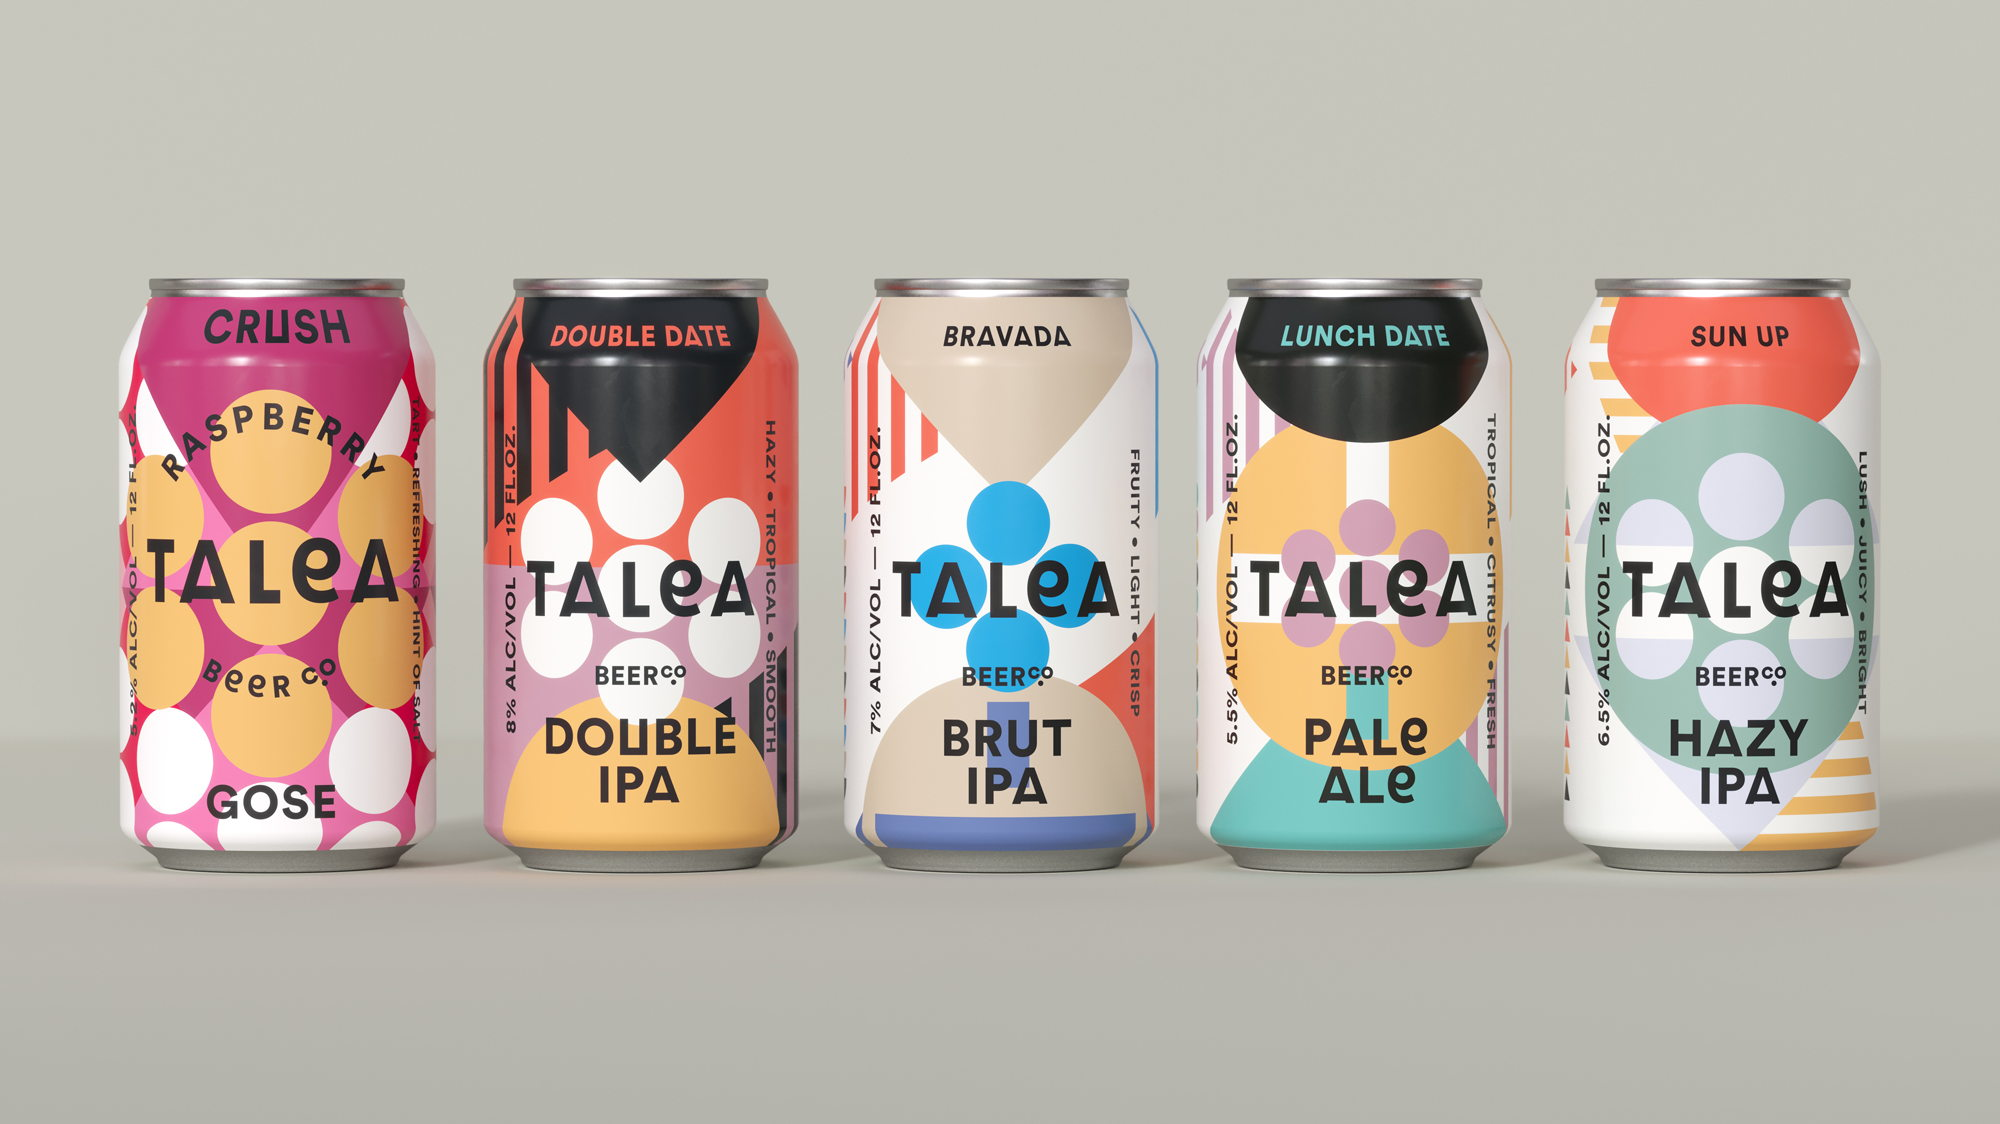 Talea Beer Co. Is A New York Based, Women Owned, Craft Beer Start-Up